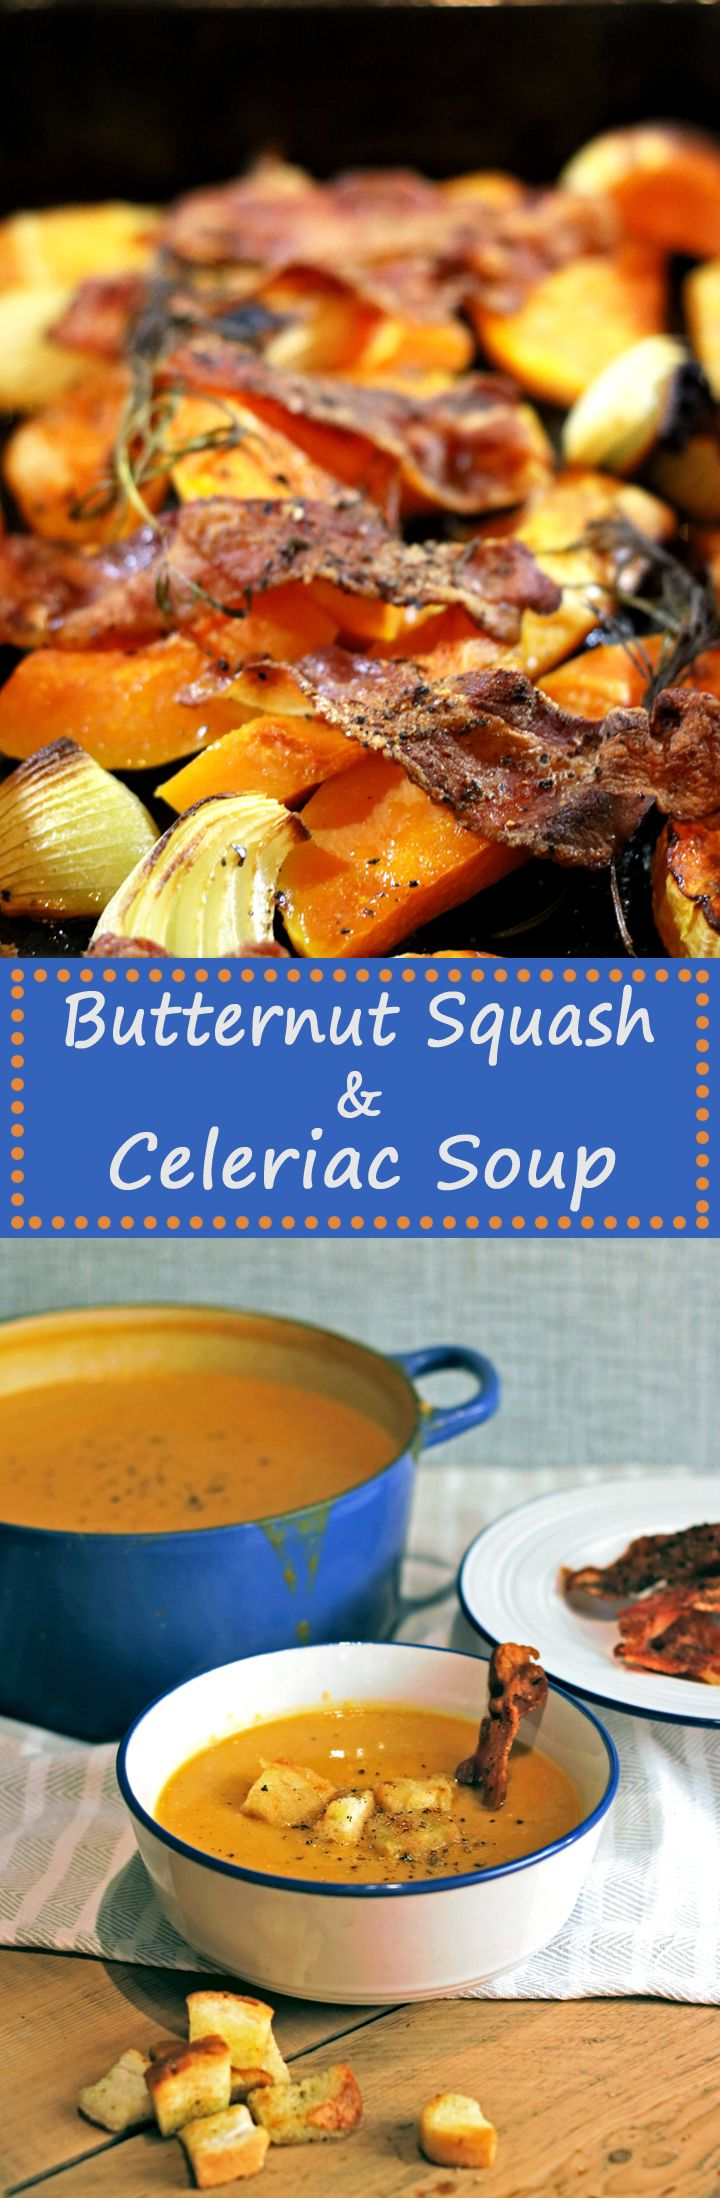 The best soup ever! This Soup recipe sees butternut squash and celeriac together with smokey bacon, and onions. So good! Perfect for Autumn or Fall!